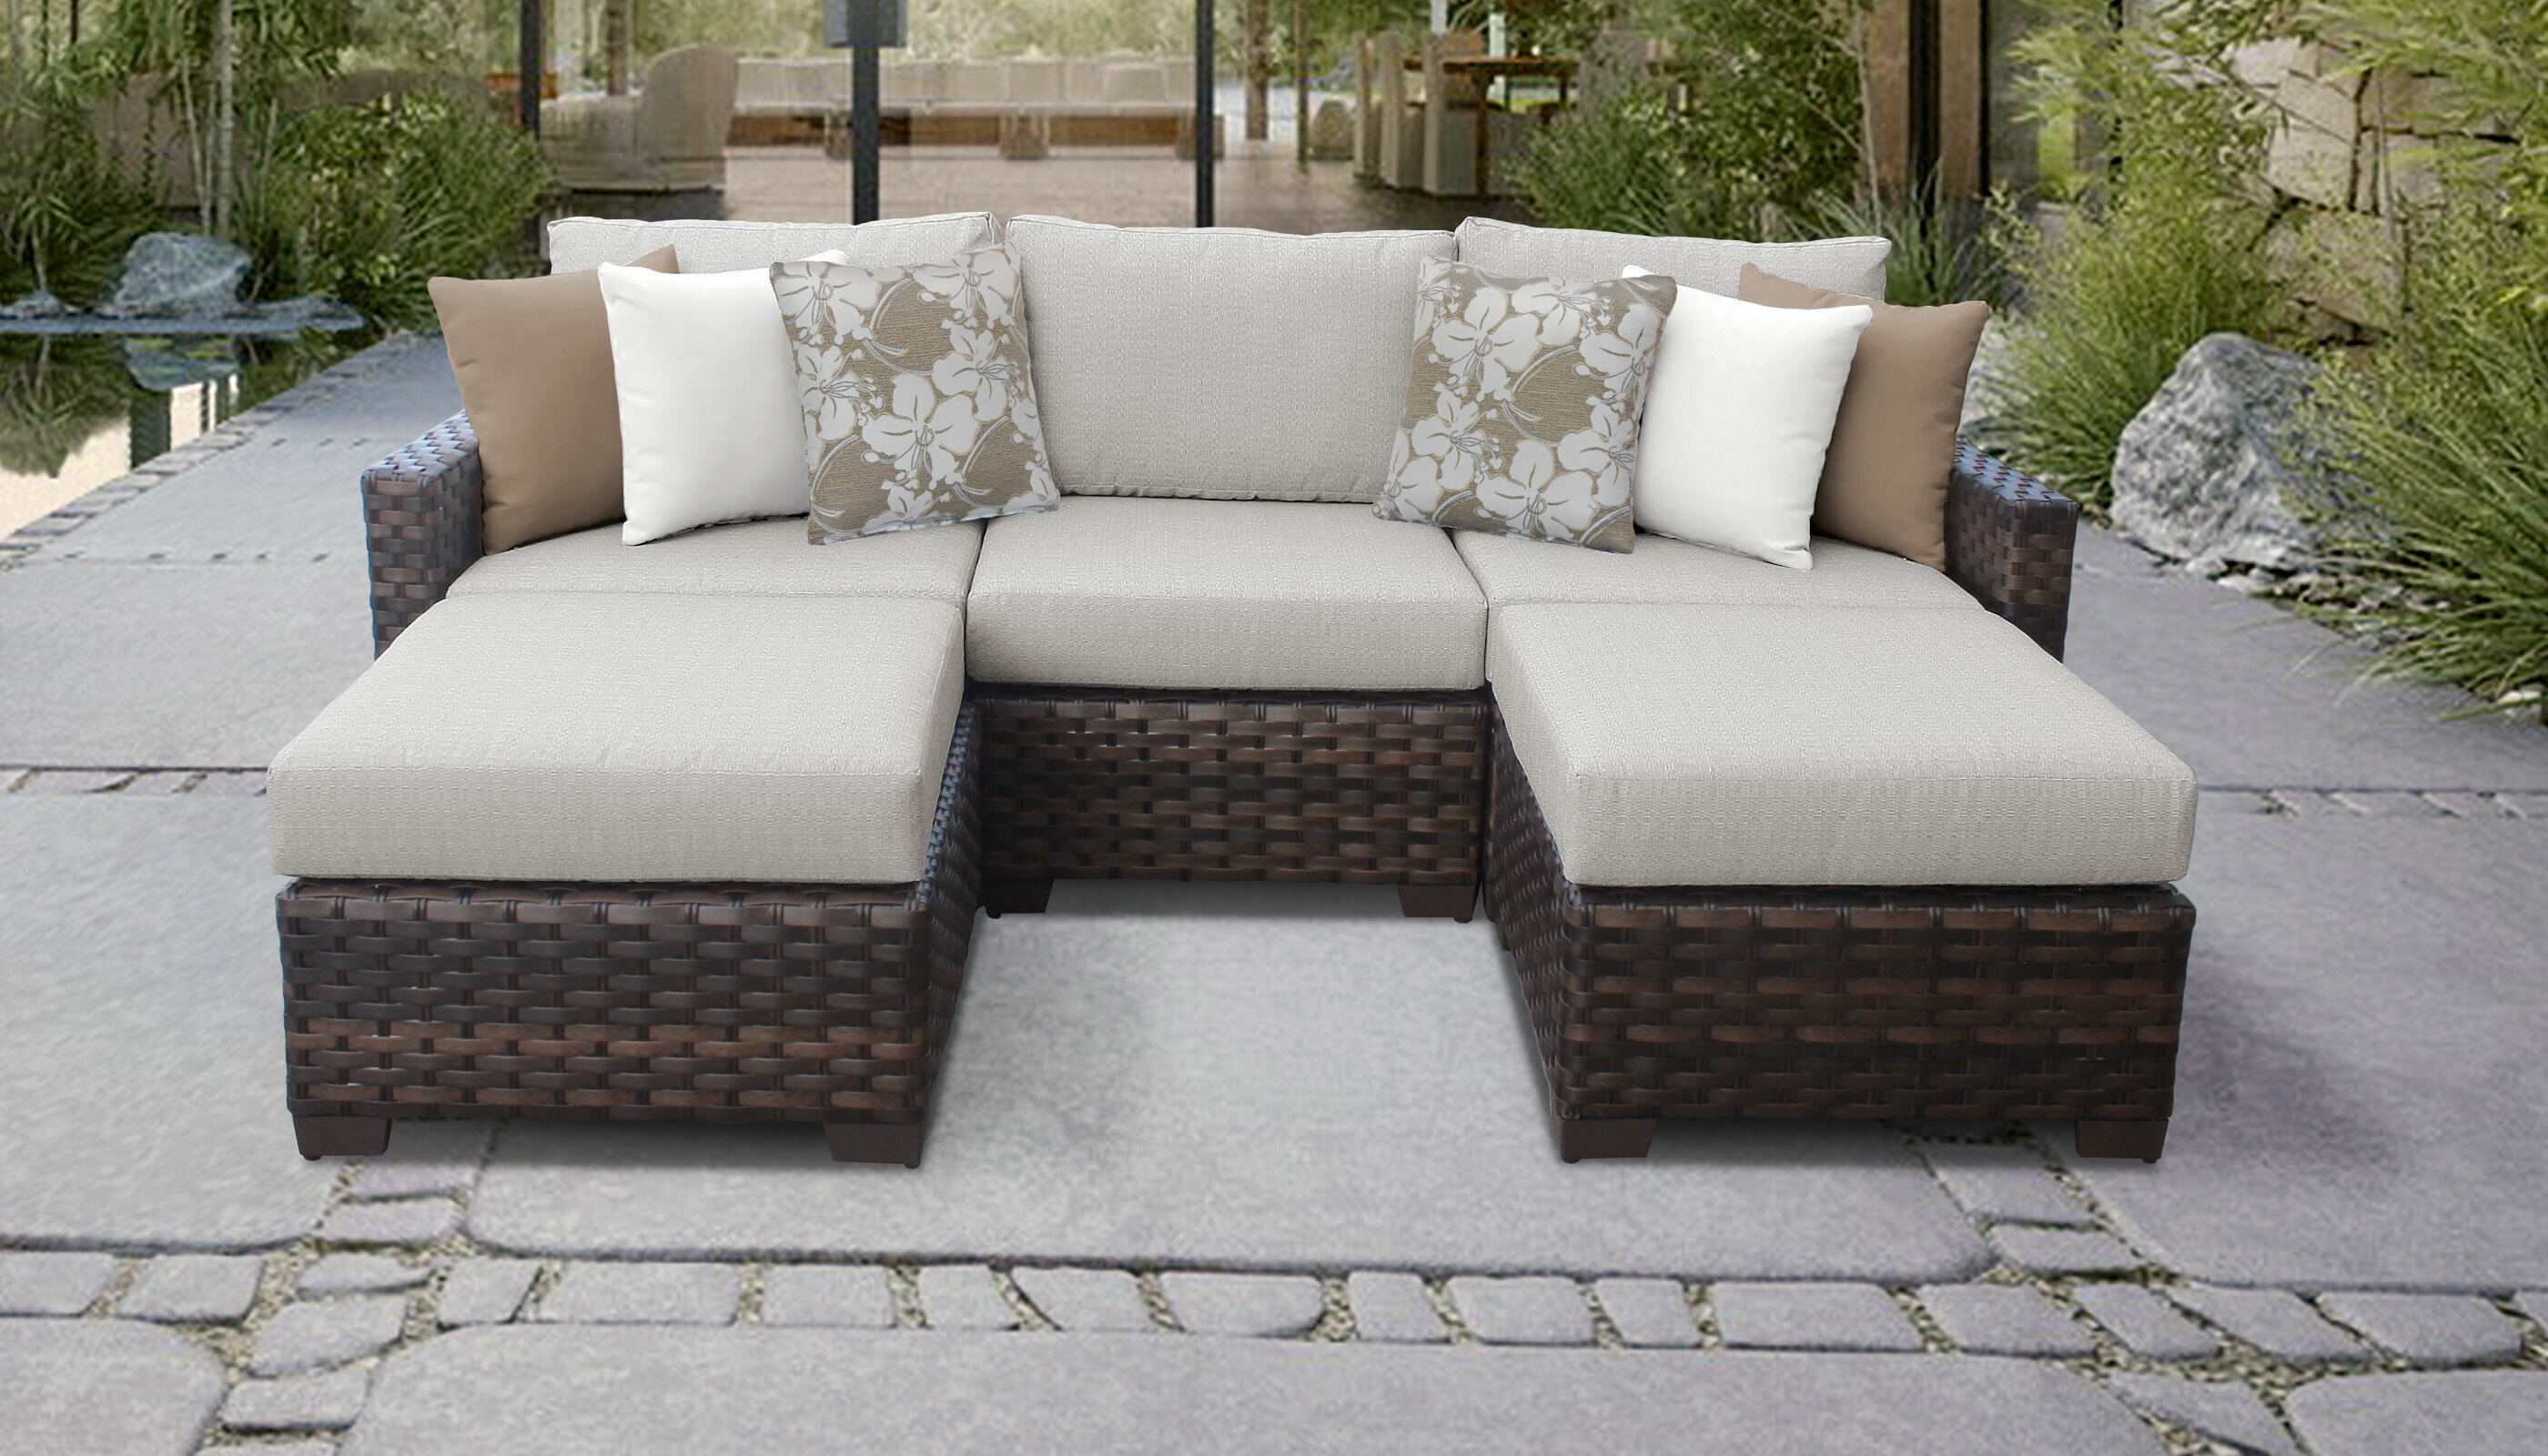 Tk Clics Kathy Ireland Homes Gardens River Brook Wicker Patio Sectional With Cushions Reviews Wayfair